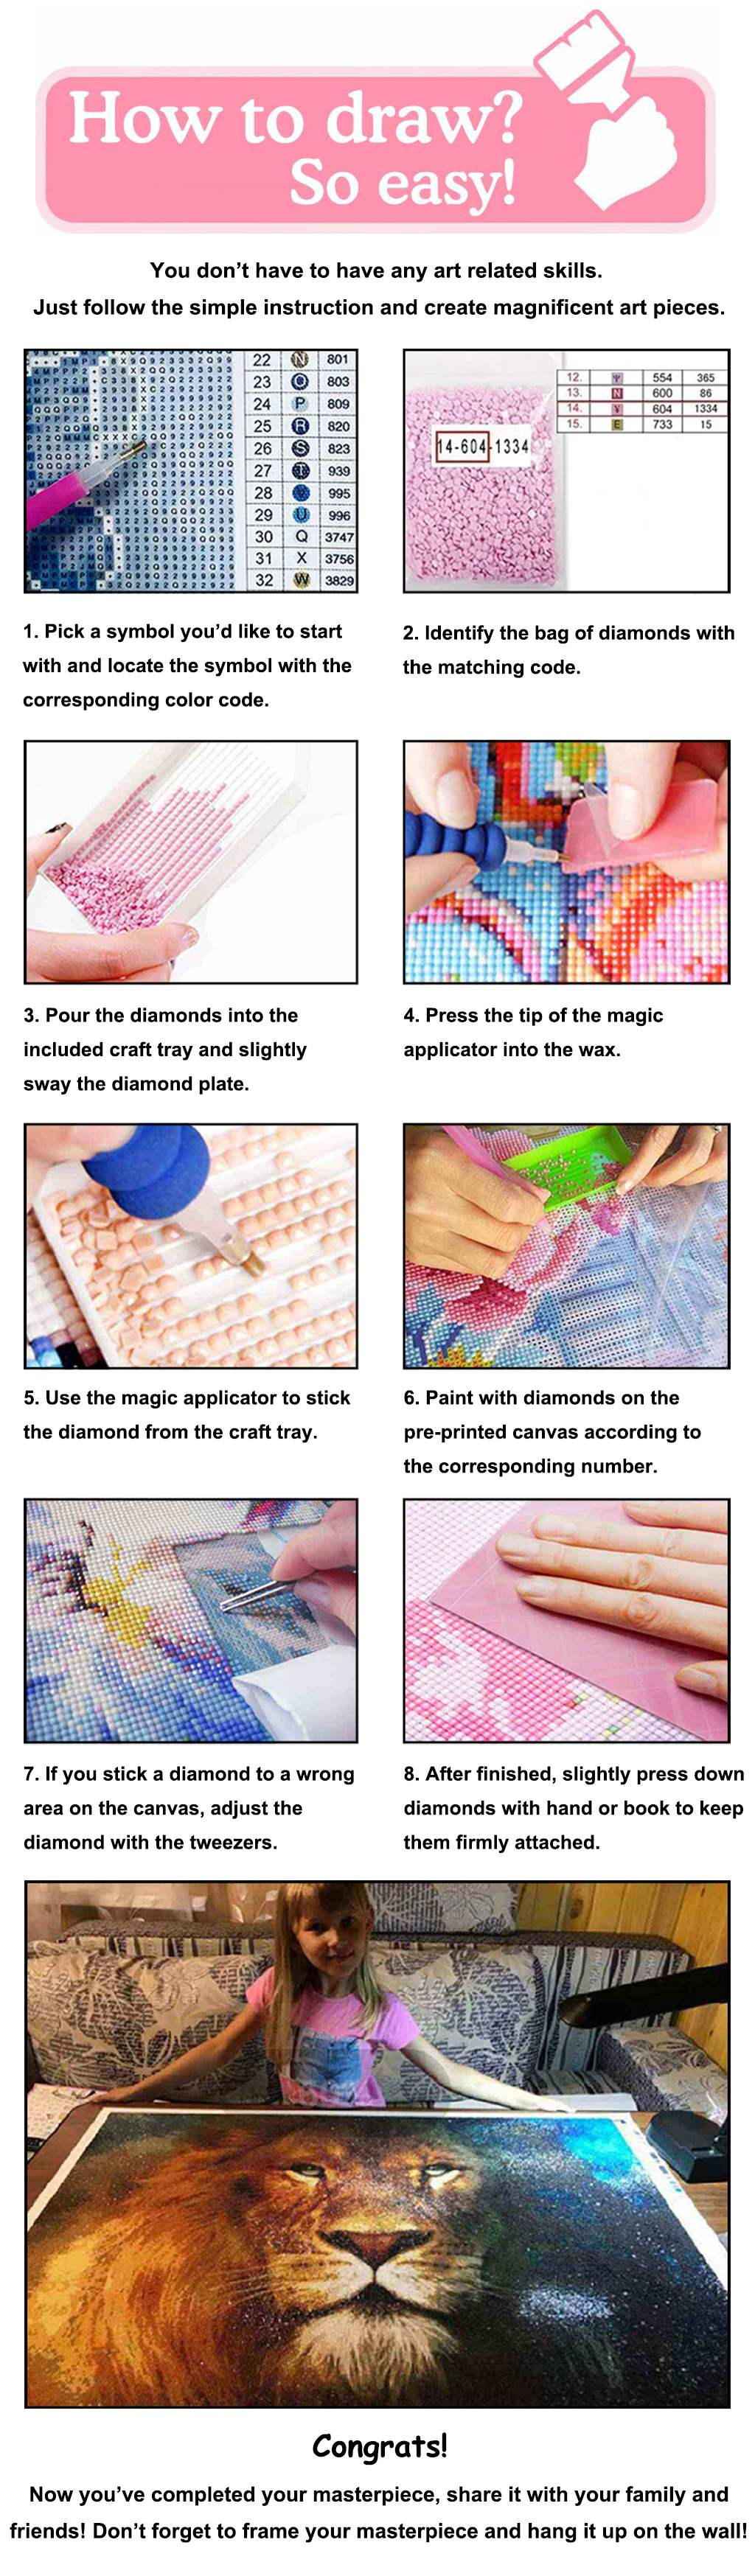 How_to_paint_with_diamonds_by_diamond_painting_pro